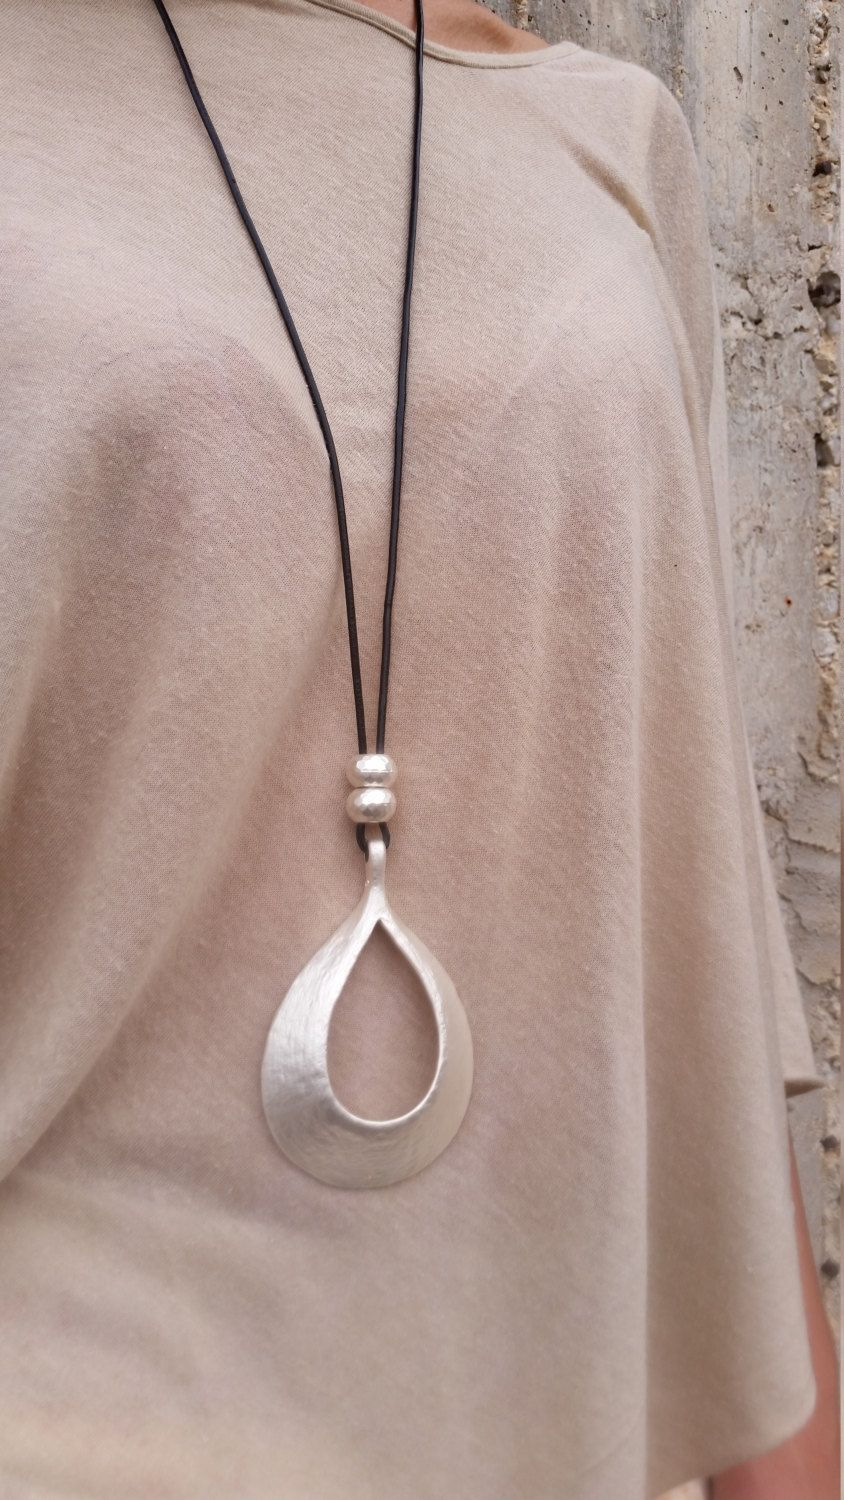 Drop silver pendant long necklace statement necklace large drop silver pendant long necklace statement necklace large necklace silver necklace stylish necklace pendant necklace classic style aloadofball Image collections